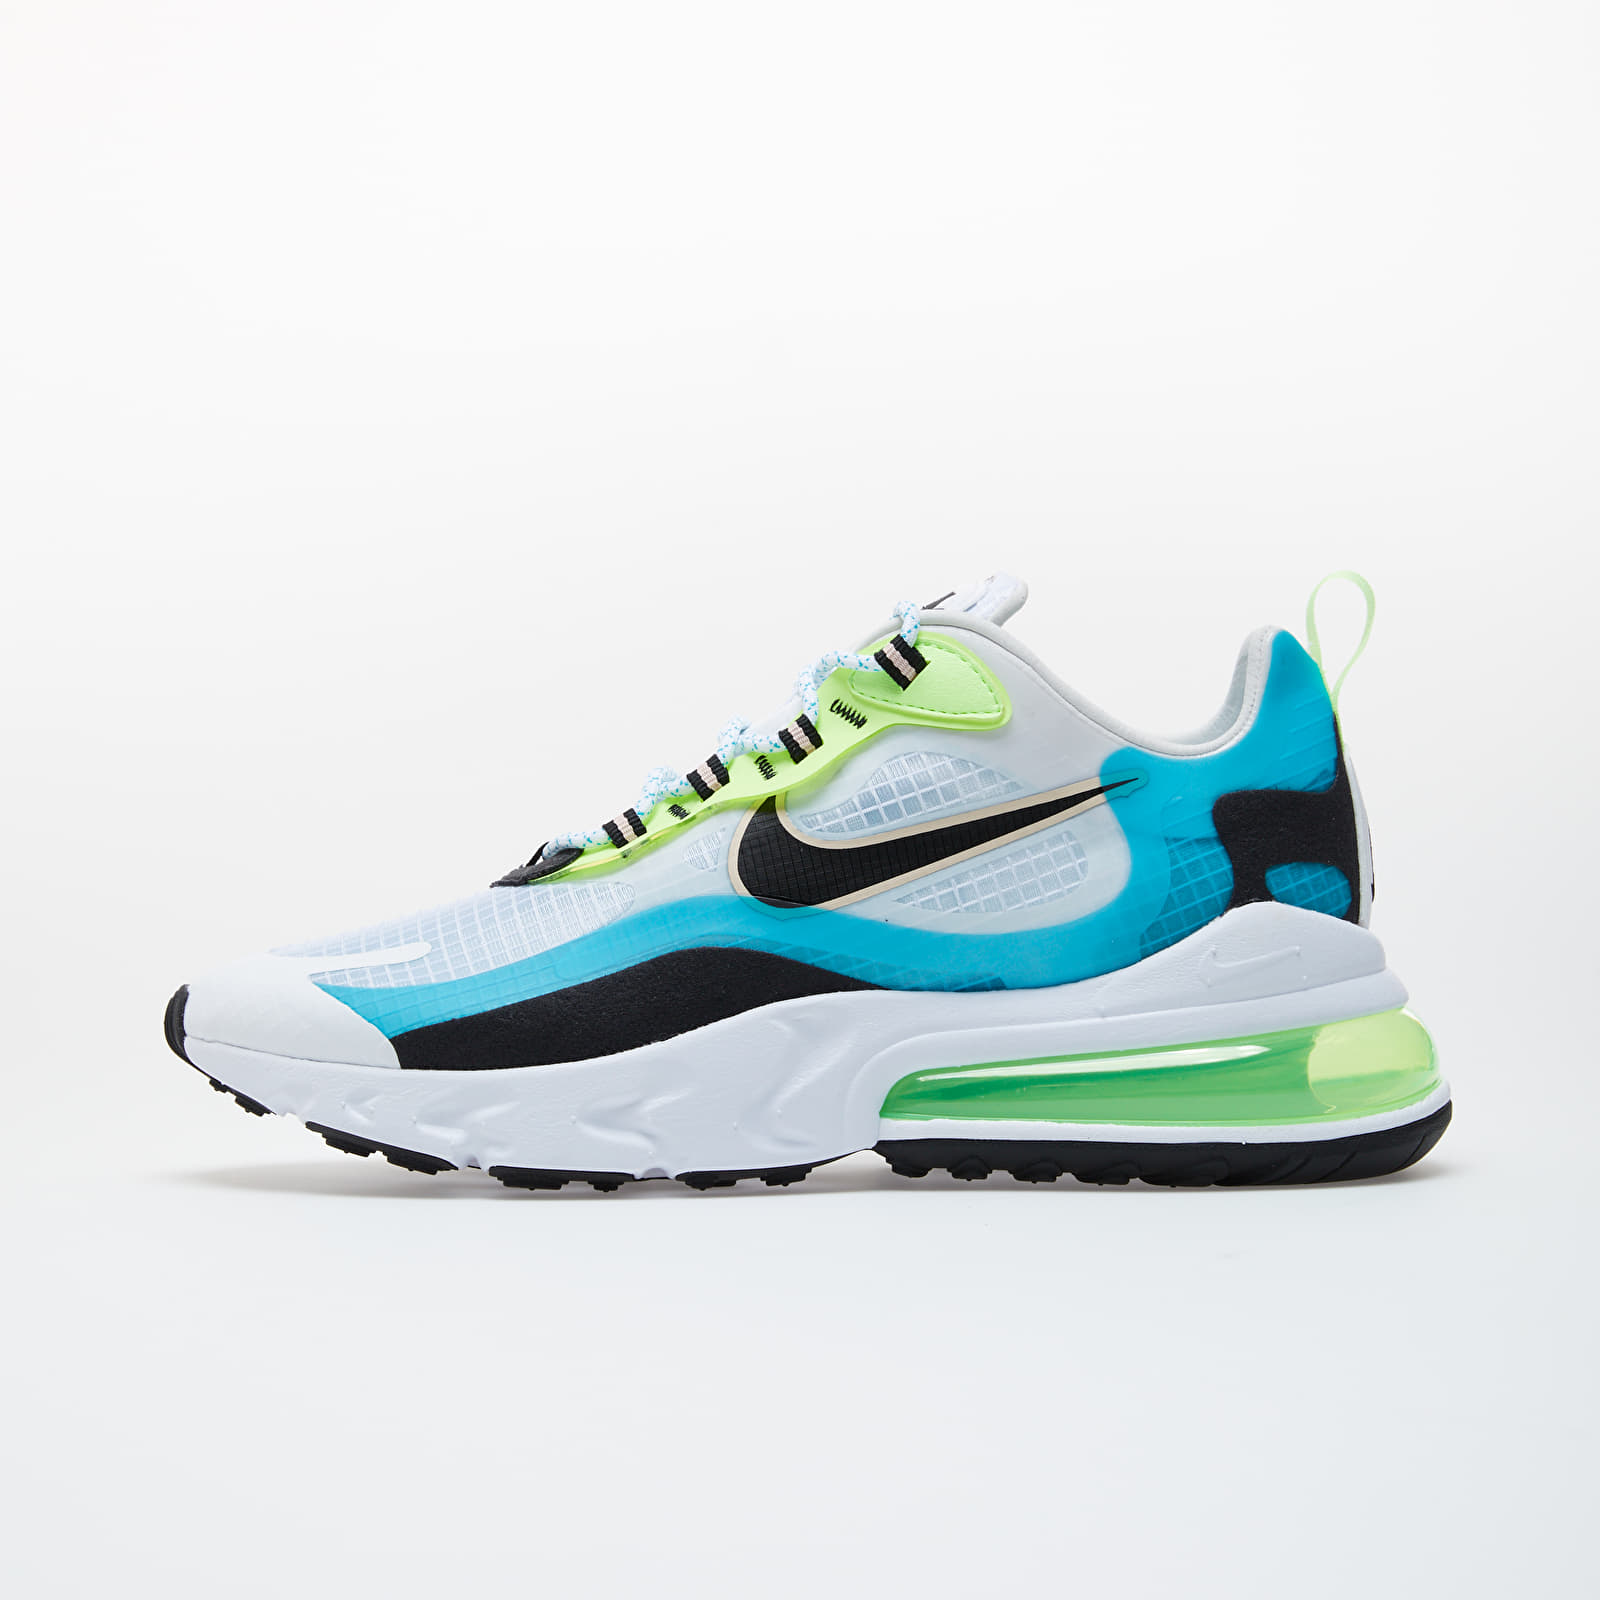 Încălțăminte pentru el Nike Air Max 270 React SE Oracle Aqua/ Black-Ghost Green